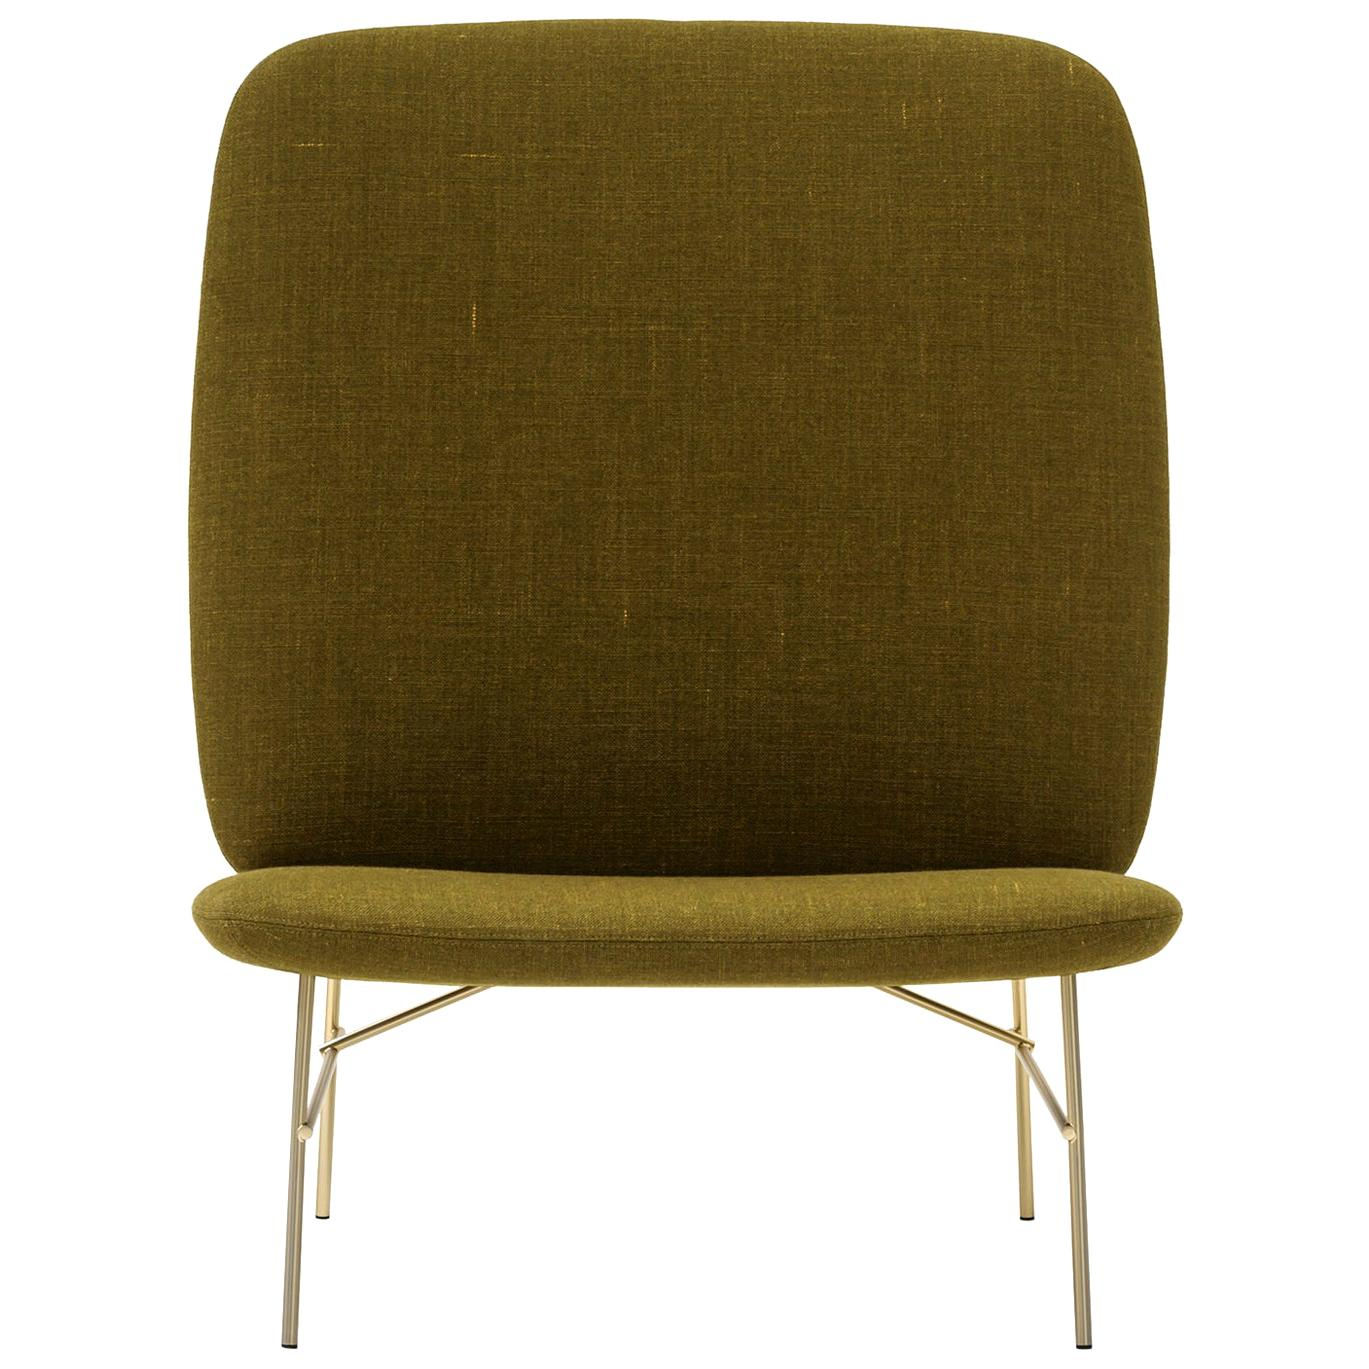 Kelly H Green Accent Chair by Claesson Koivisto Rune